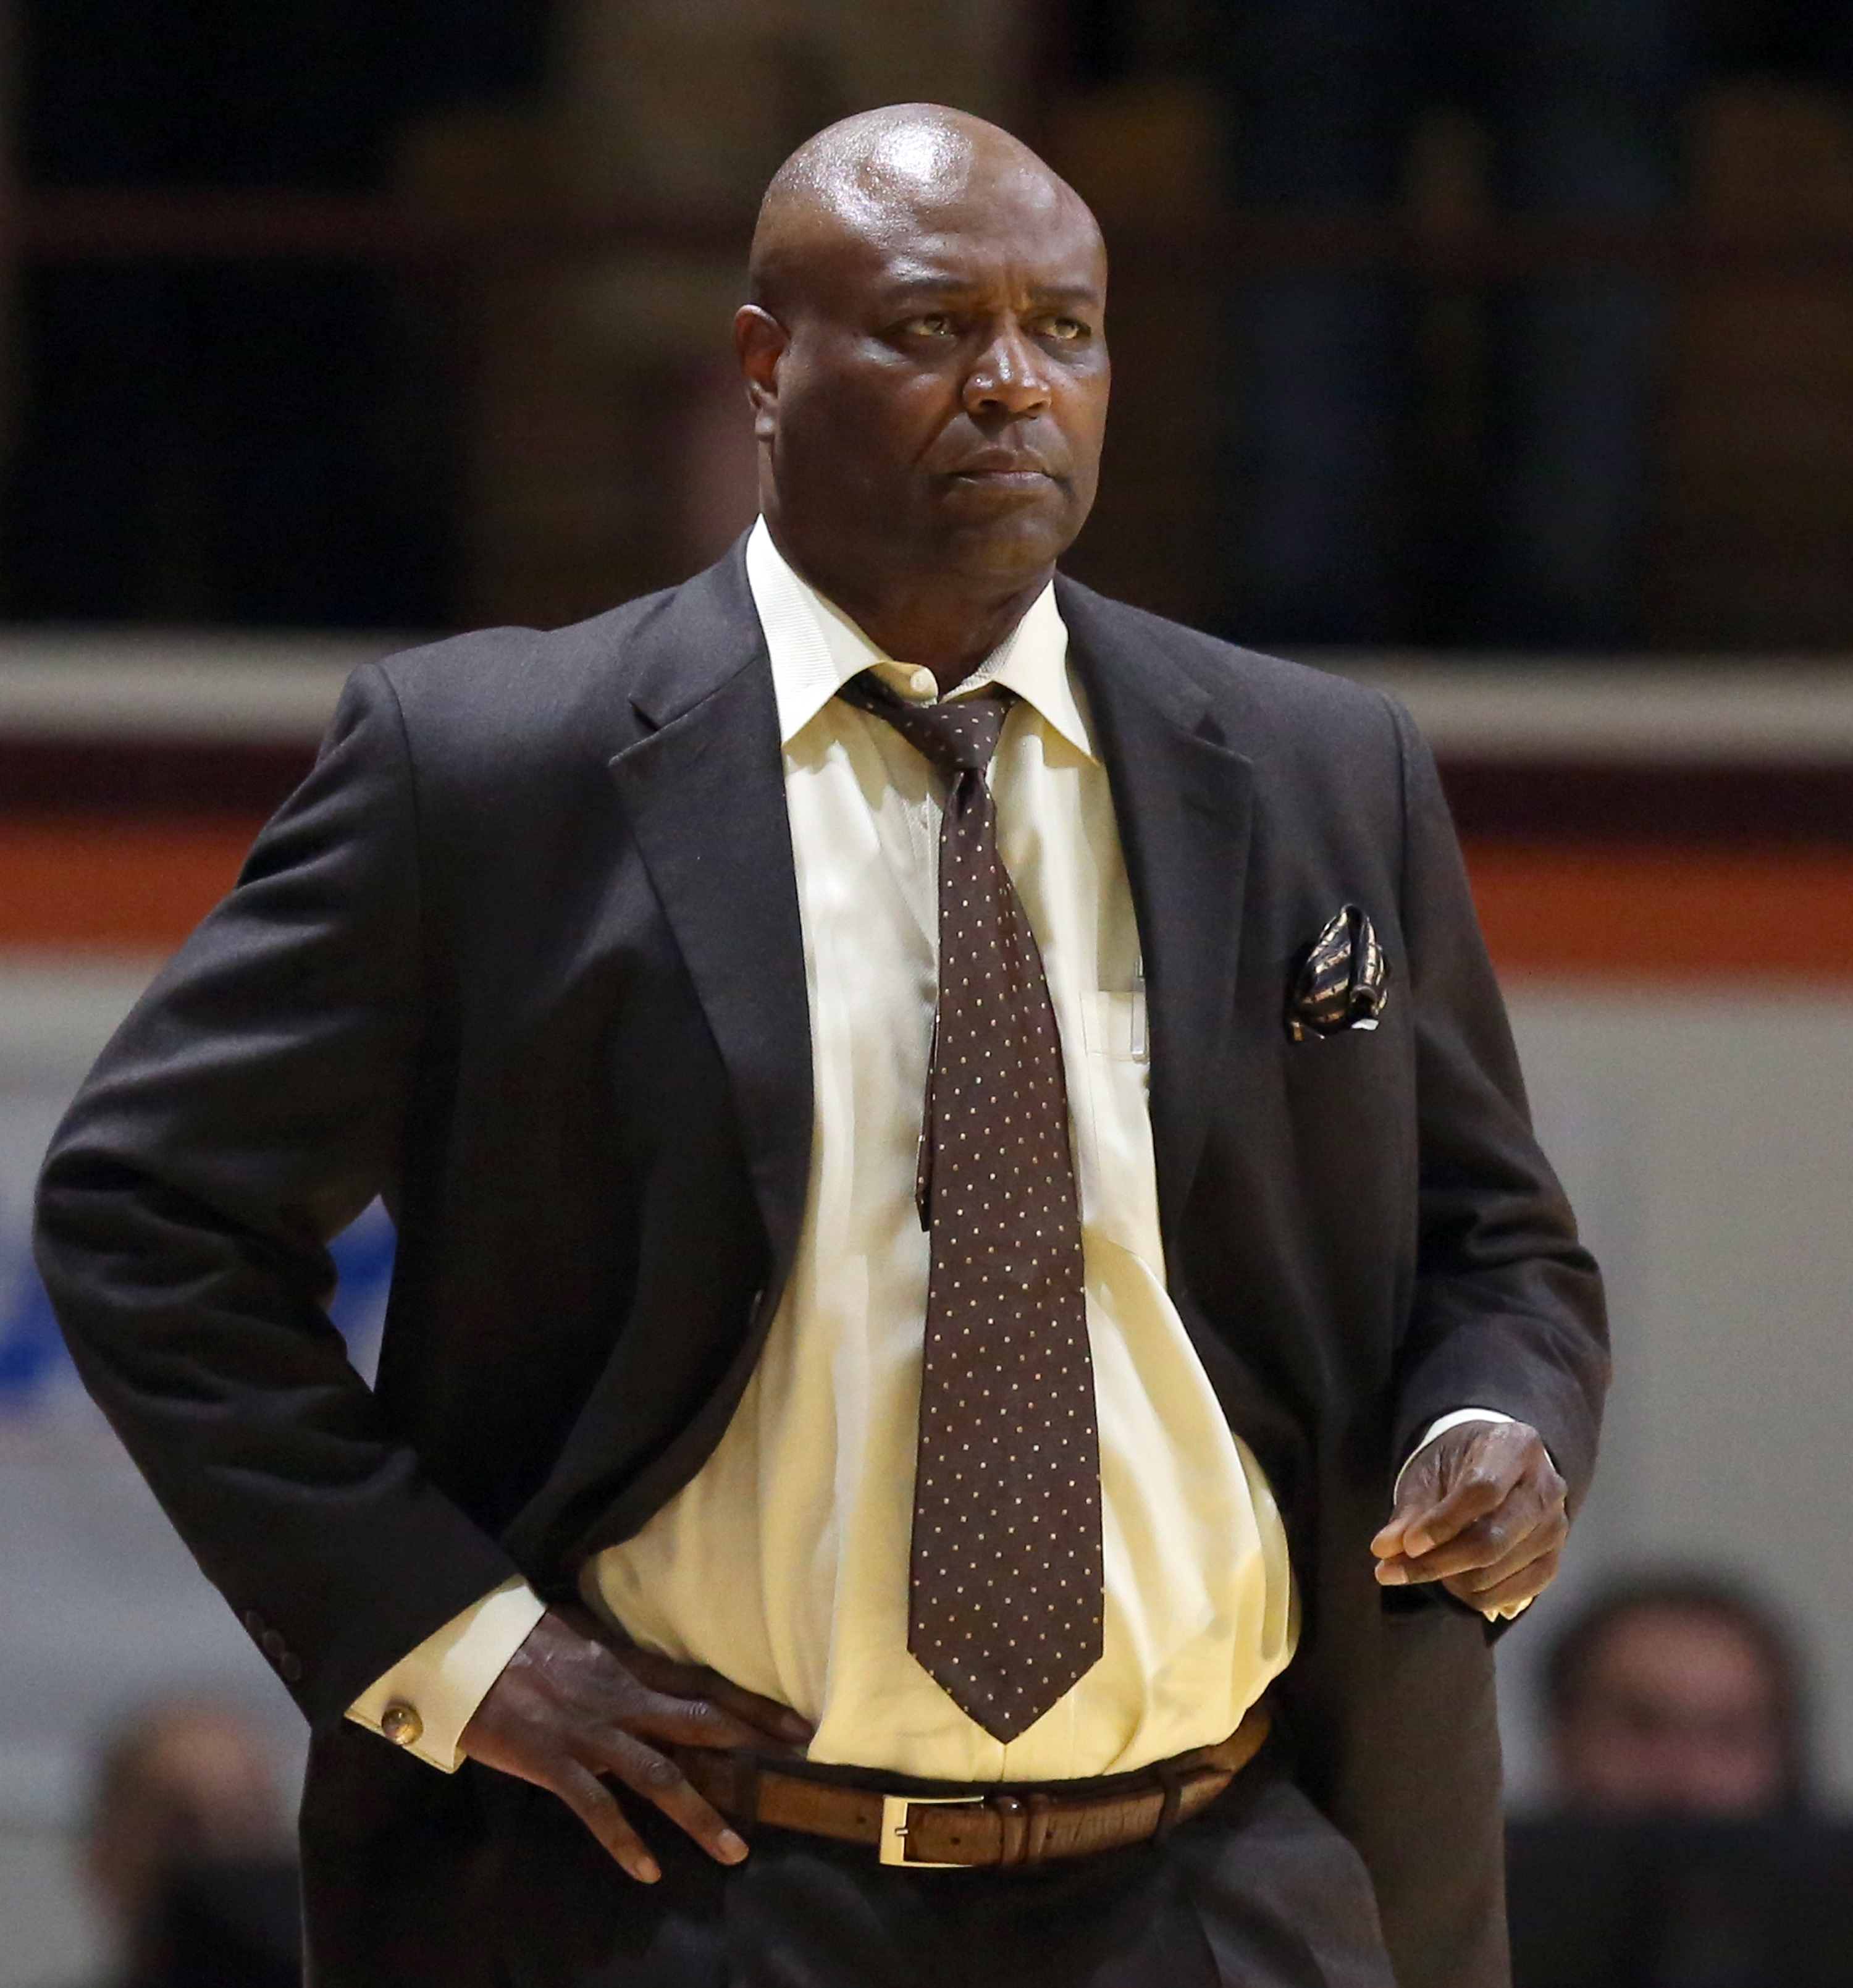 Florida State head coach Leonard Hamilton watches from the bench in the first half of an NCAA college basketball game against Virginia Tech in Blacksburg, Va. Saturday, Feb. 20 2016. (Matt Gentry /The Roanoke Times via AP) LOCAL TELEVISION OUT; SALEM TIME